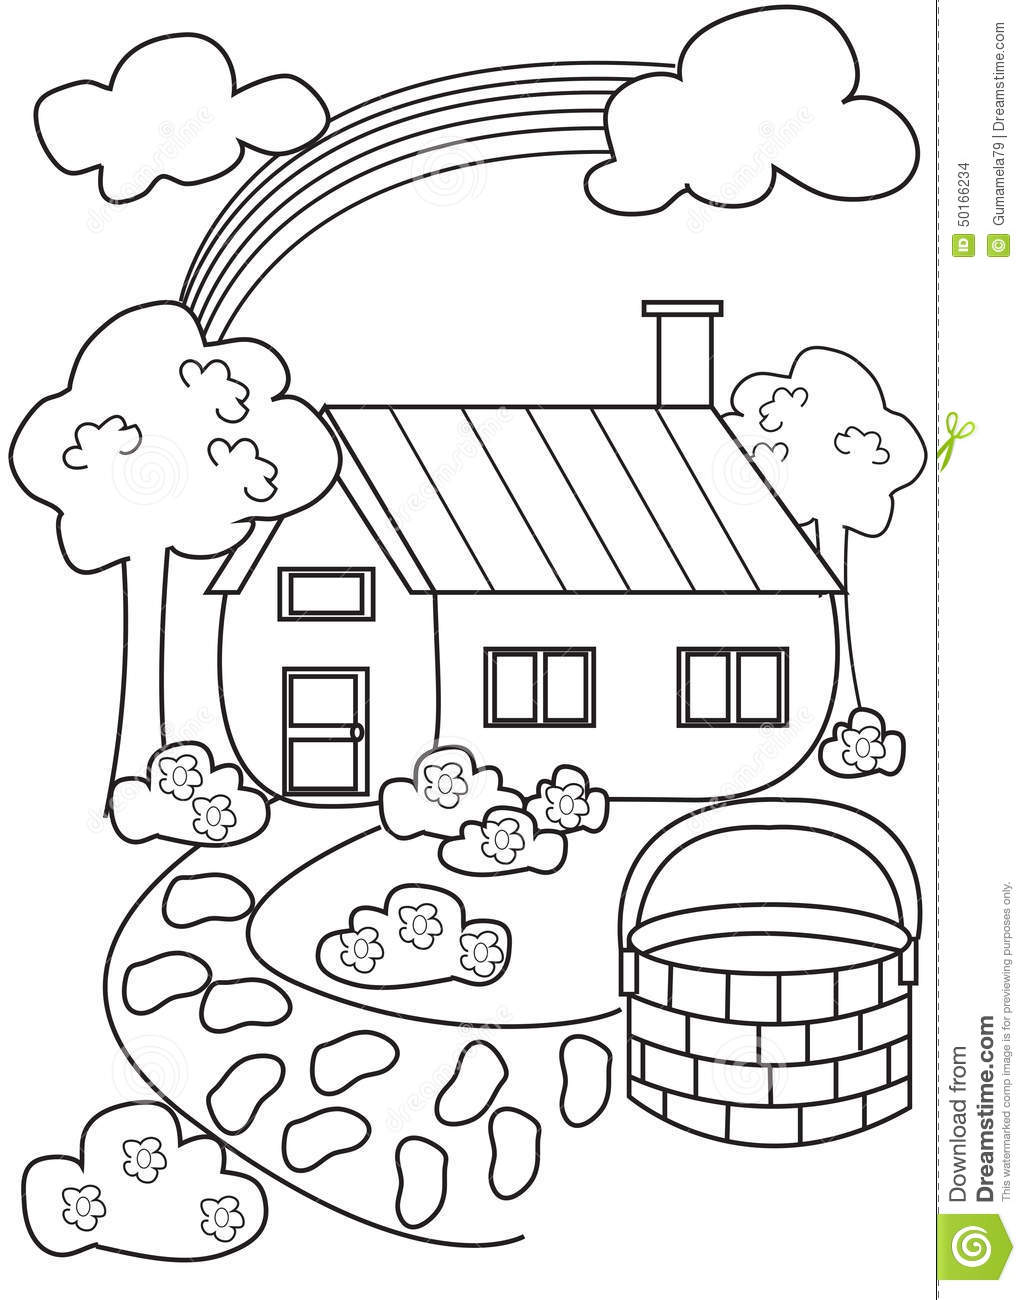 House coloring page stock illustration. Illustration of artwork ...